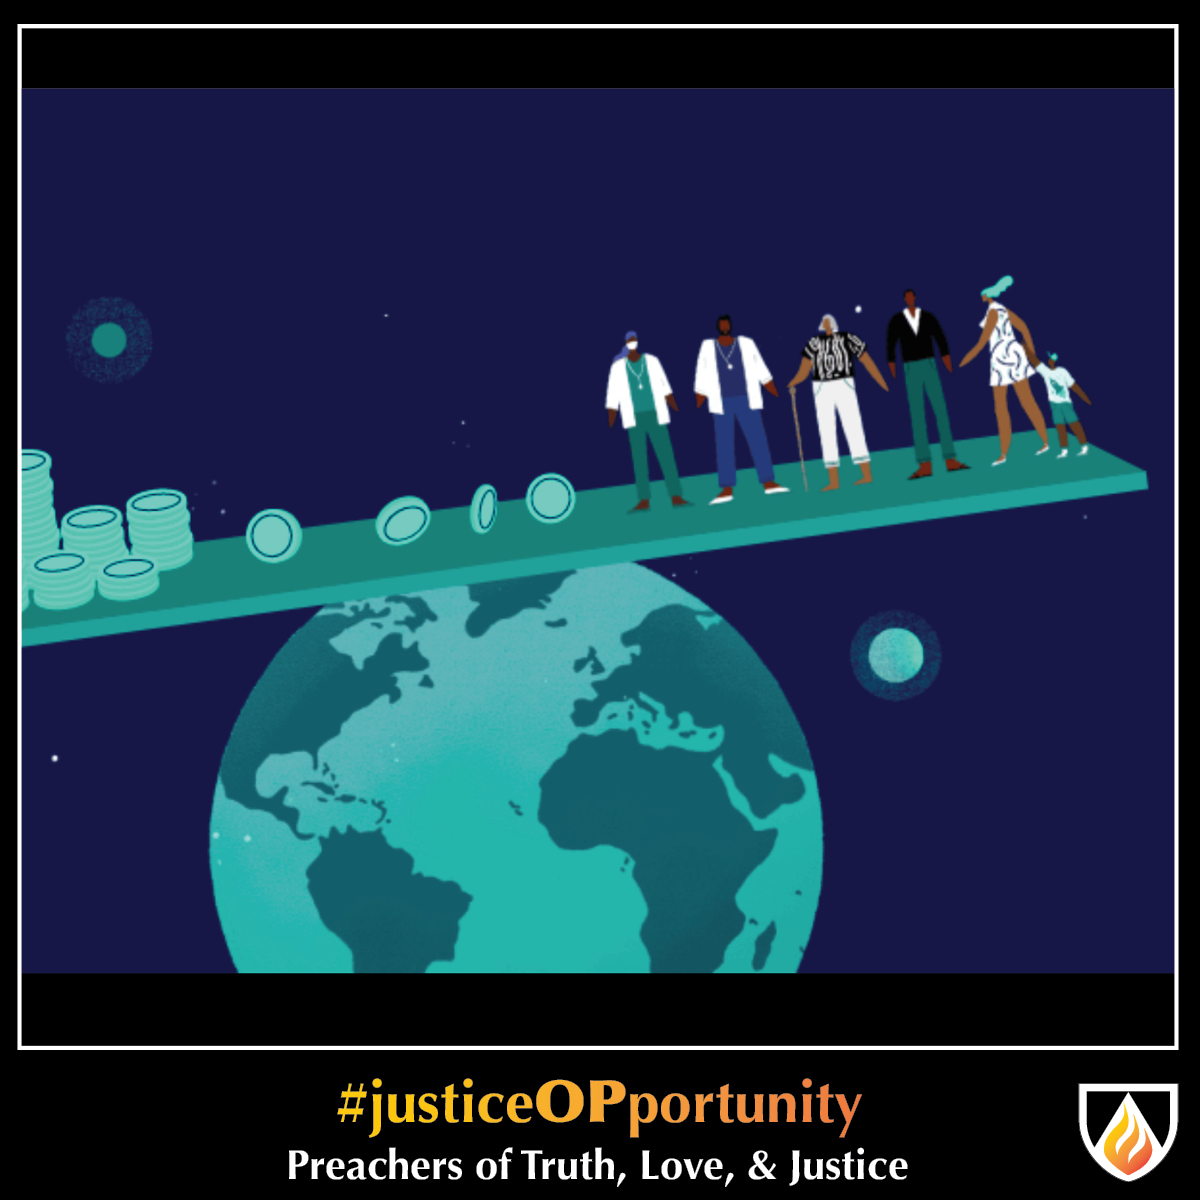 #justiceOPportunity Thursday—January 7, 2021